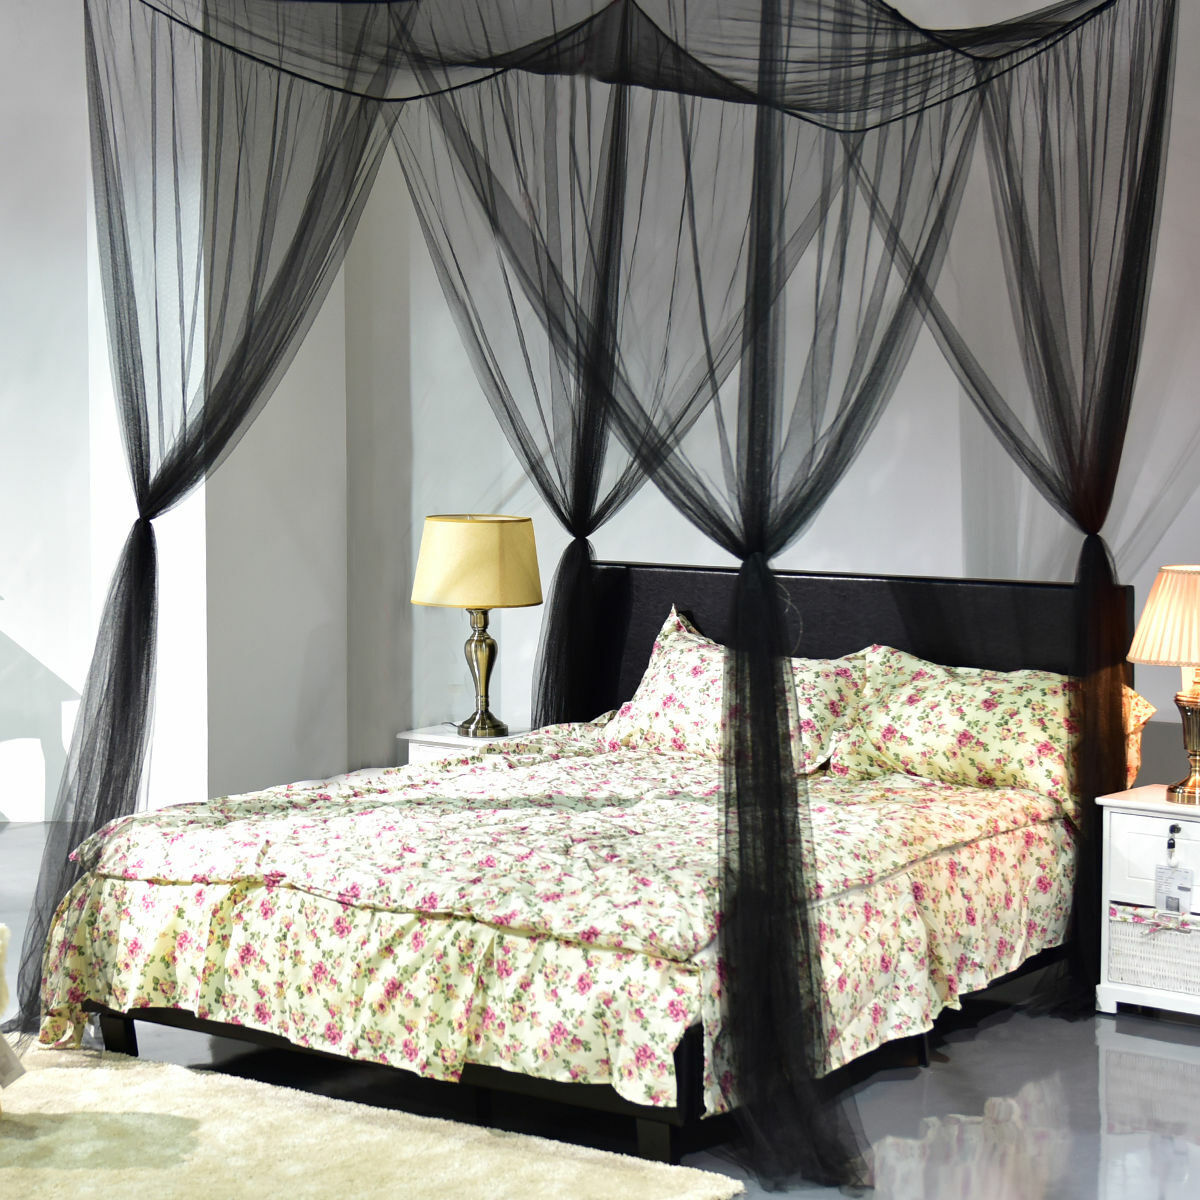 New 4 Corner Mosquito Net Post Bed Canopy Curtain for Large